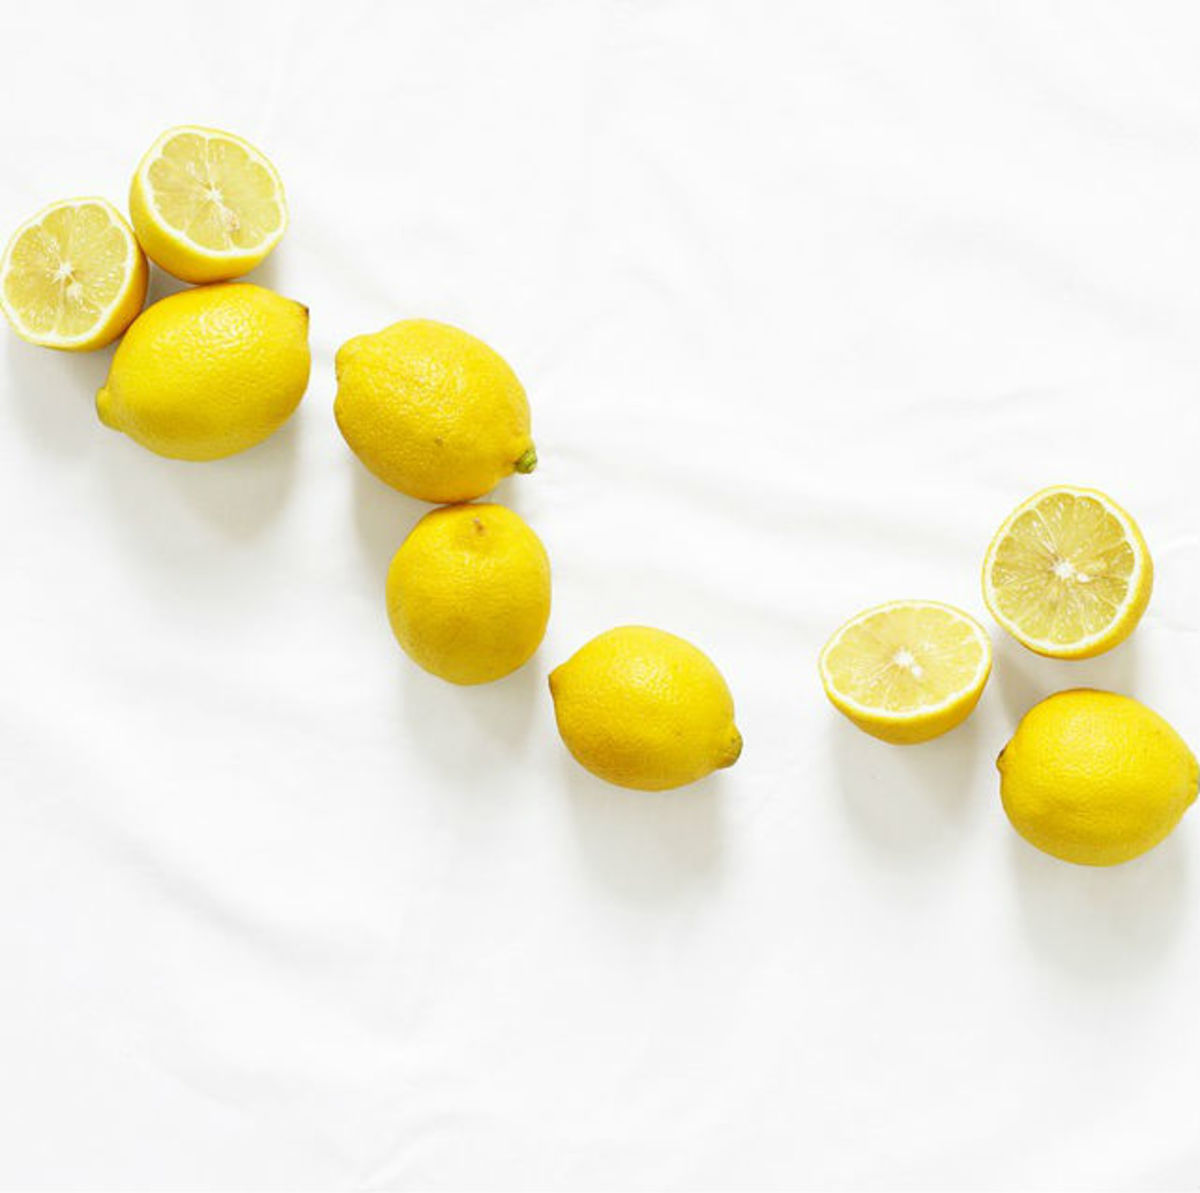 Lemon juice or a hot honey lemon drink are great for when you have a cold.